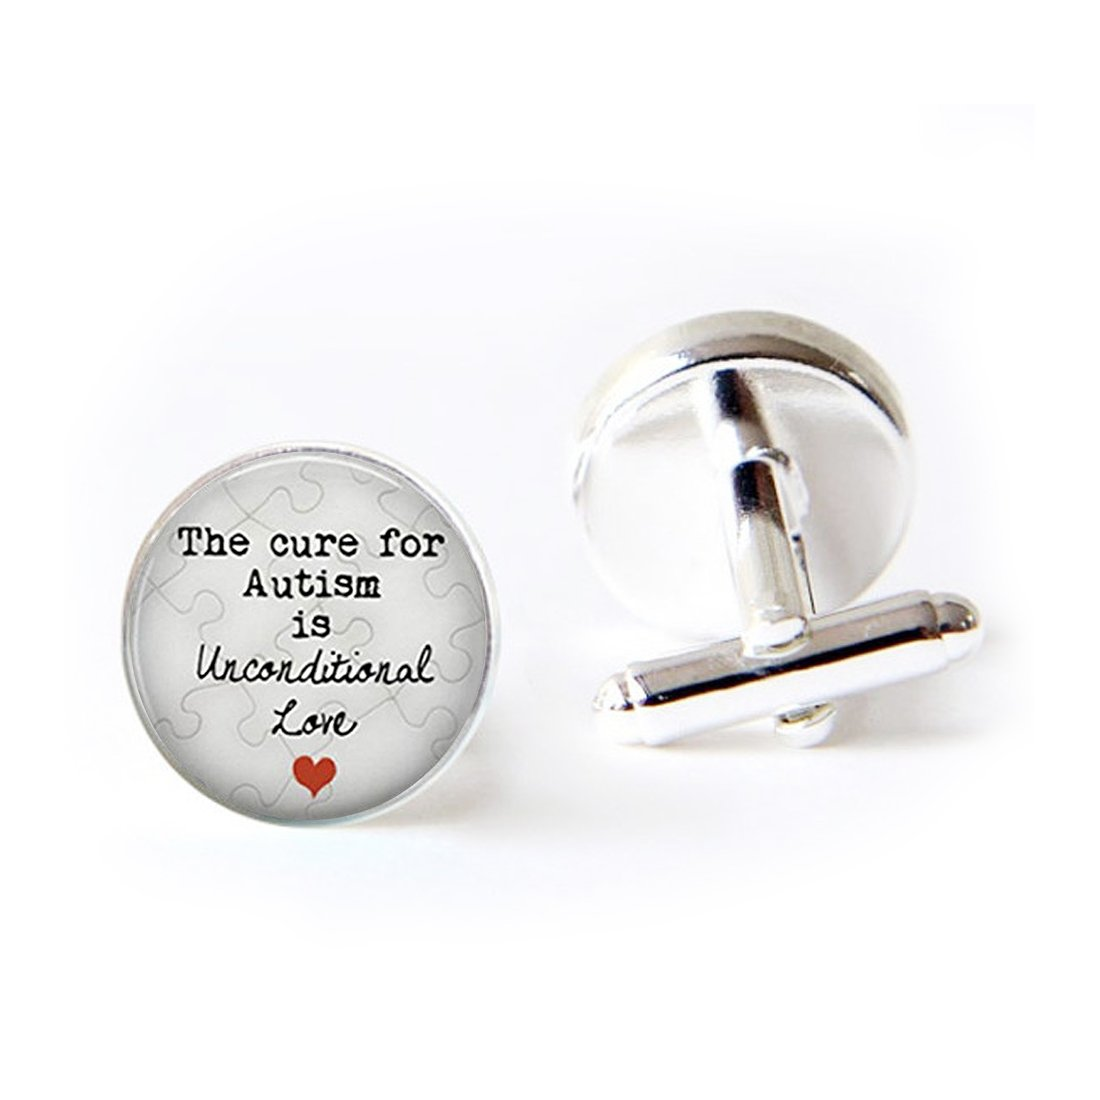 Unique Round Cufflinks Set The Cure for Autism is Unconditional Love Quote Glass Cuff Dress Shirt Links Wedding Business Anniversary Gift for Him